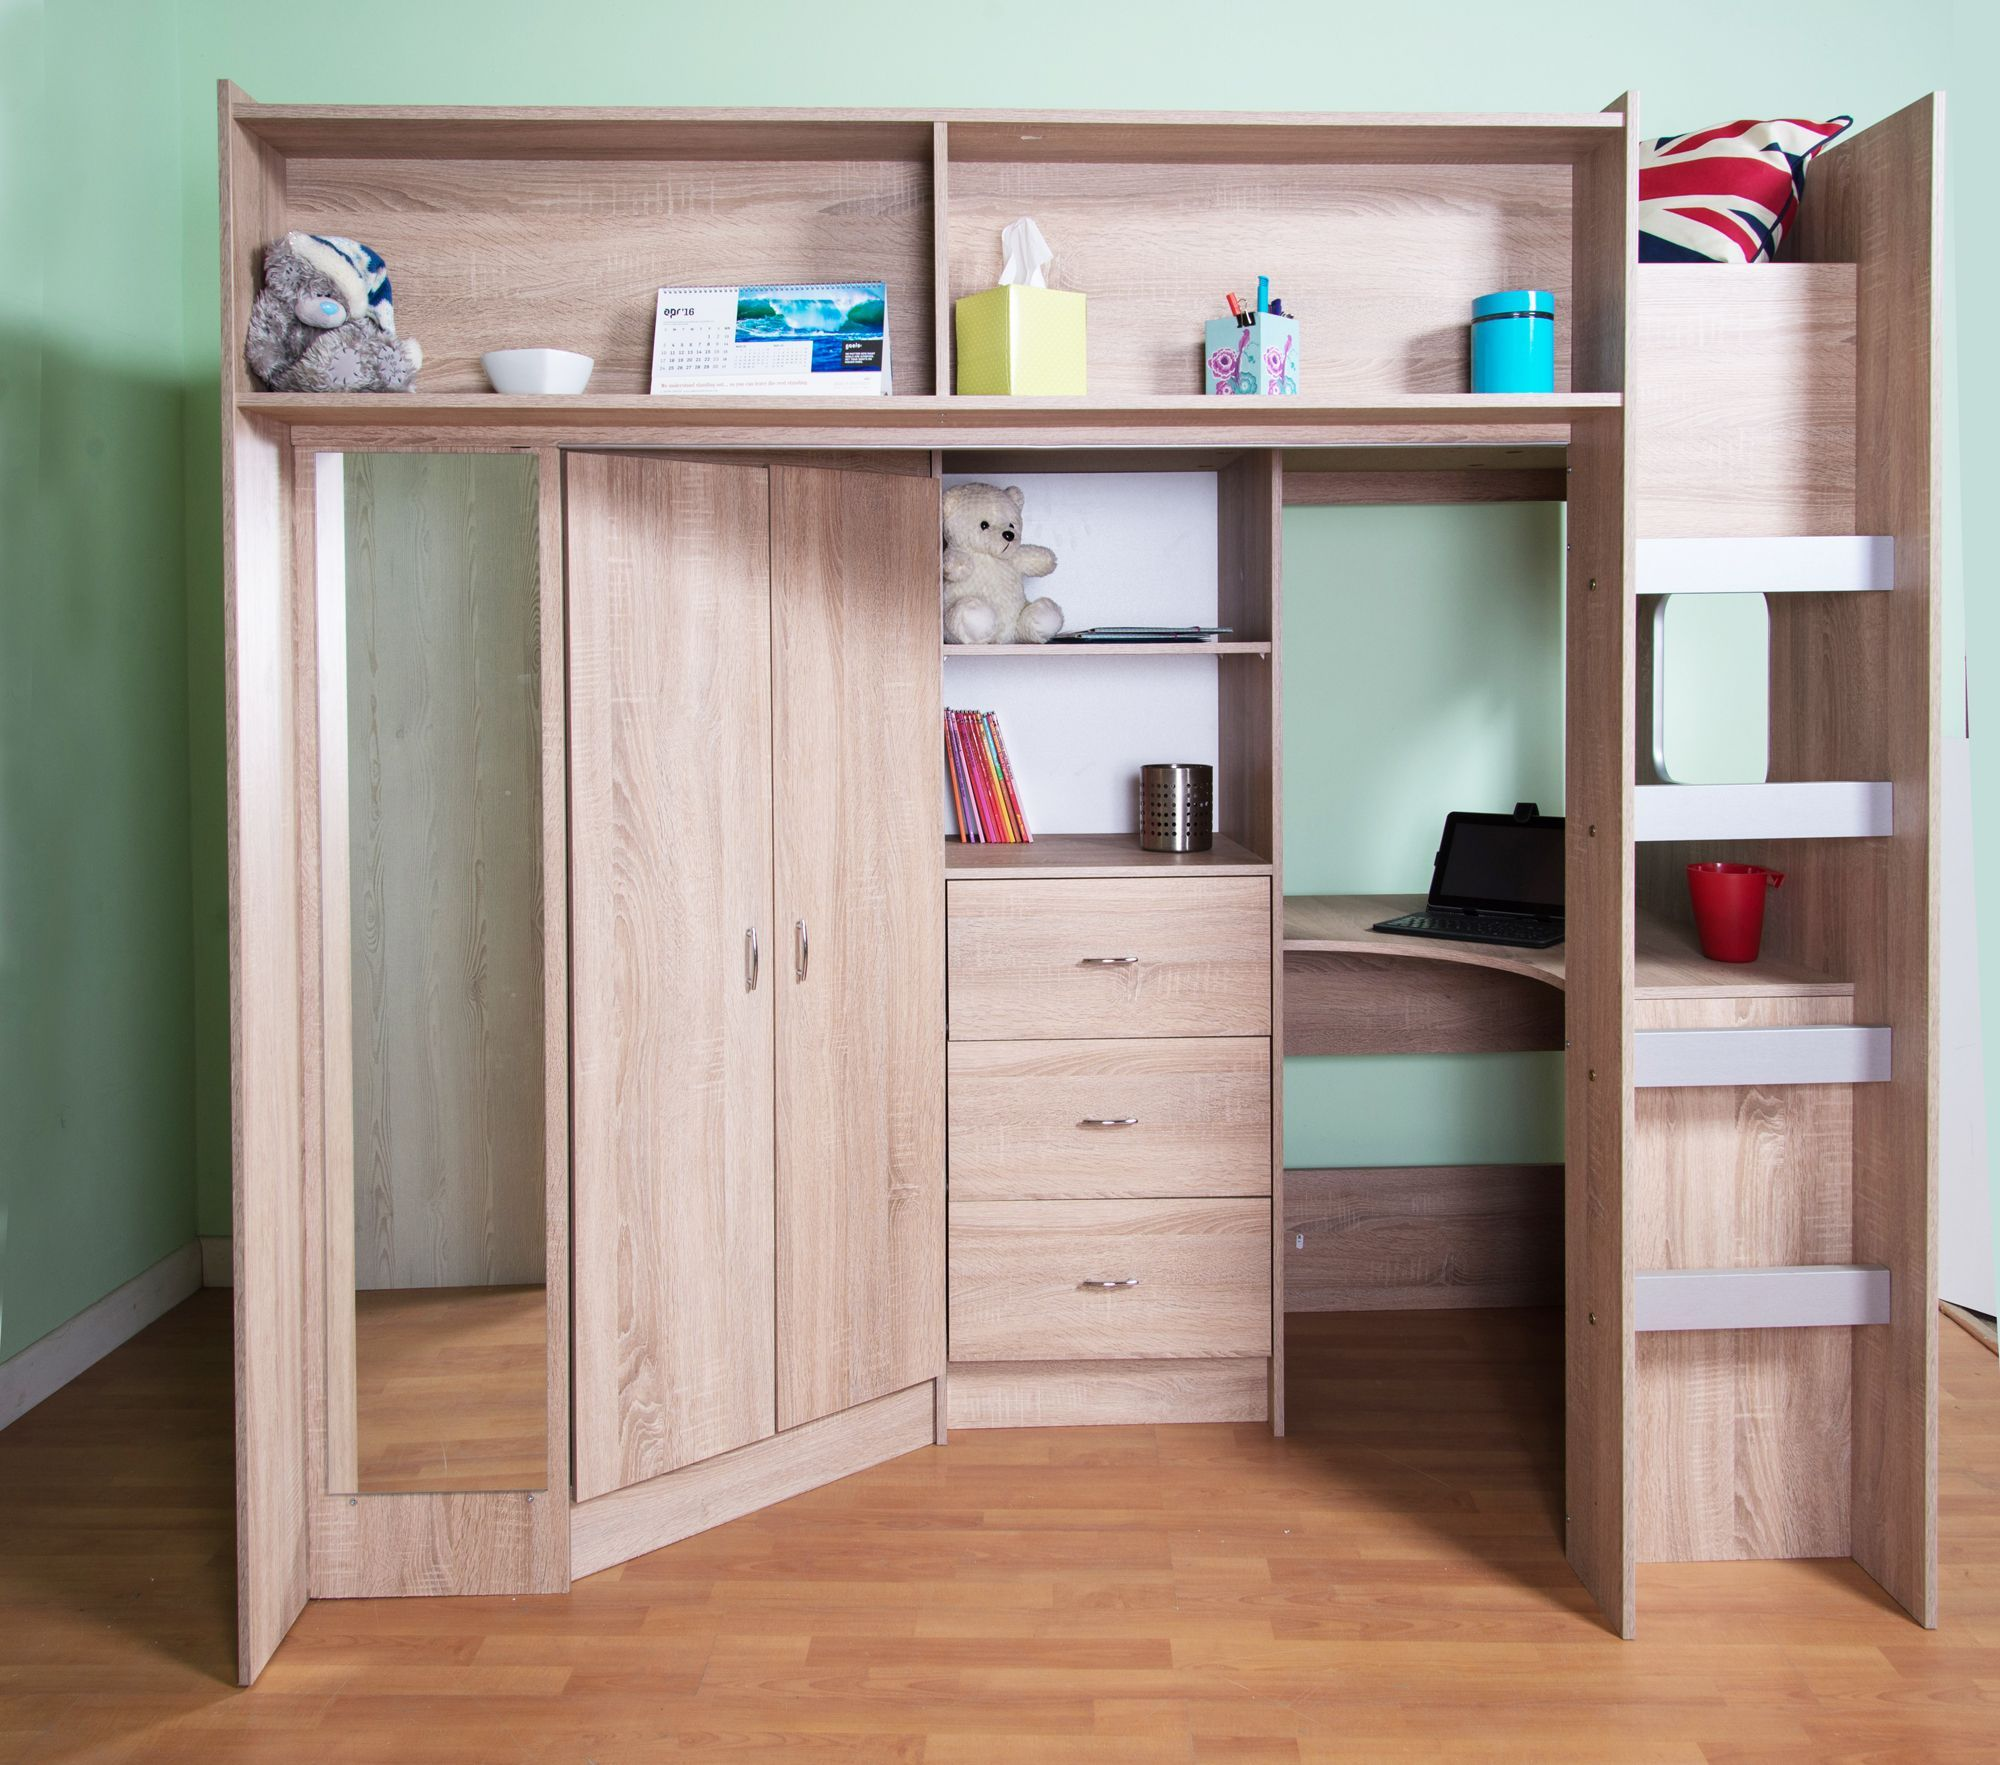 Cabin Beds For Small Rooms High Sleeper Cabin Bed Stamford Sonoma Oak M0860Fuloak  Ideeën